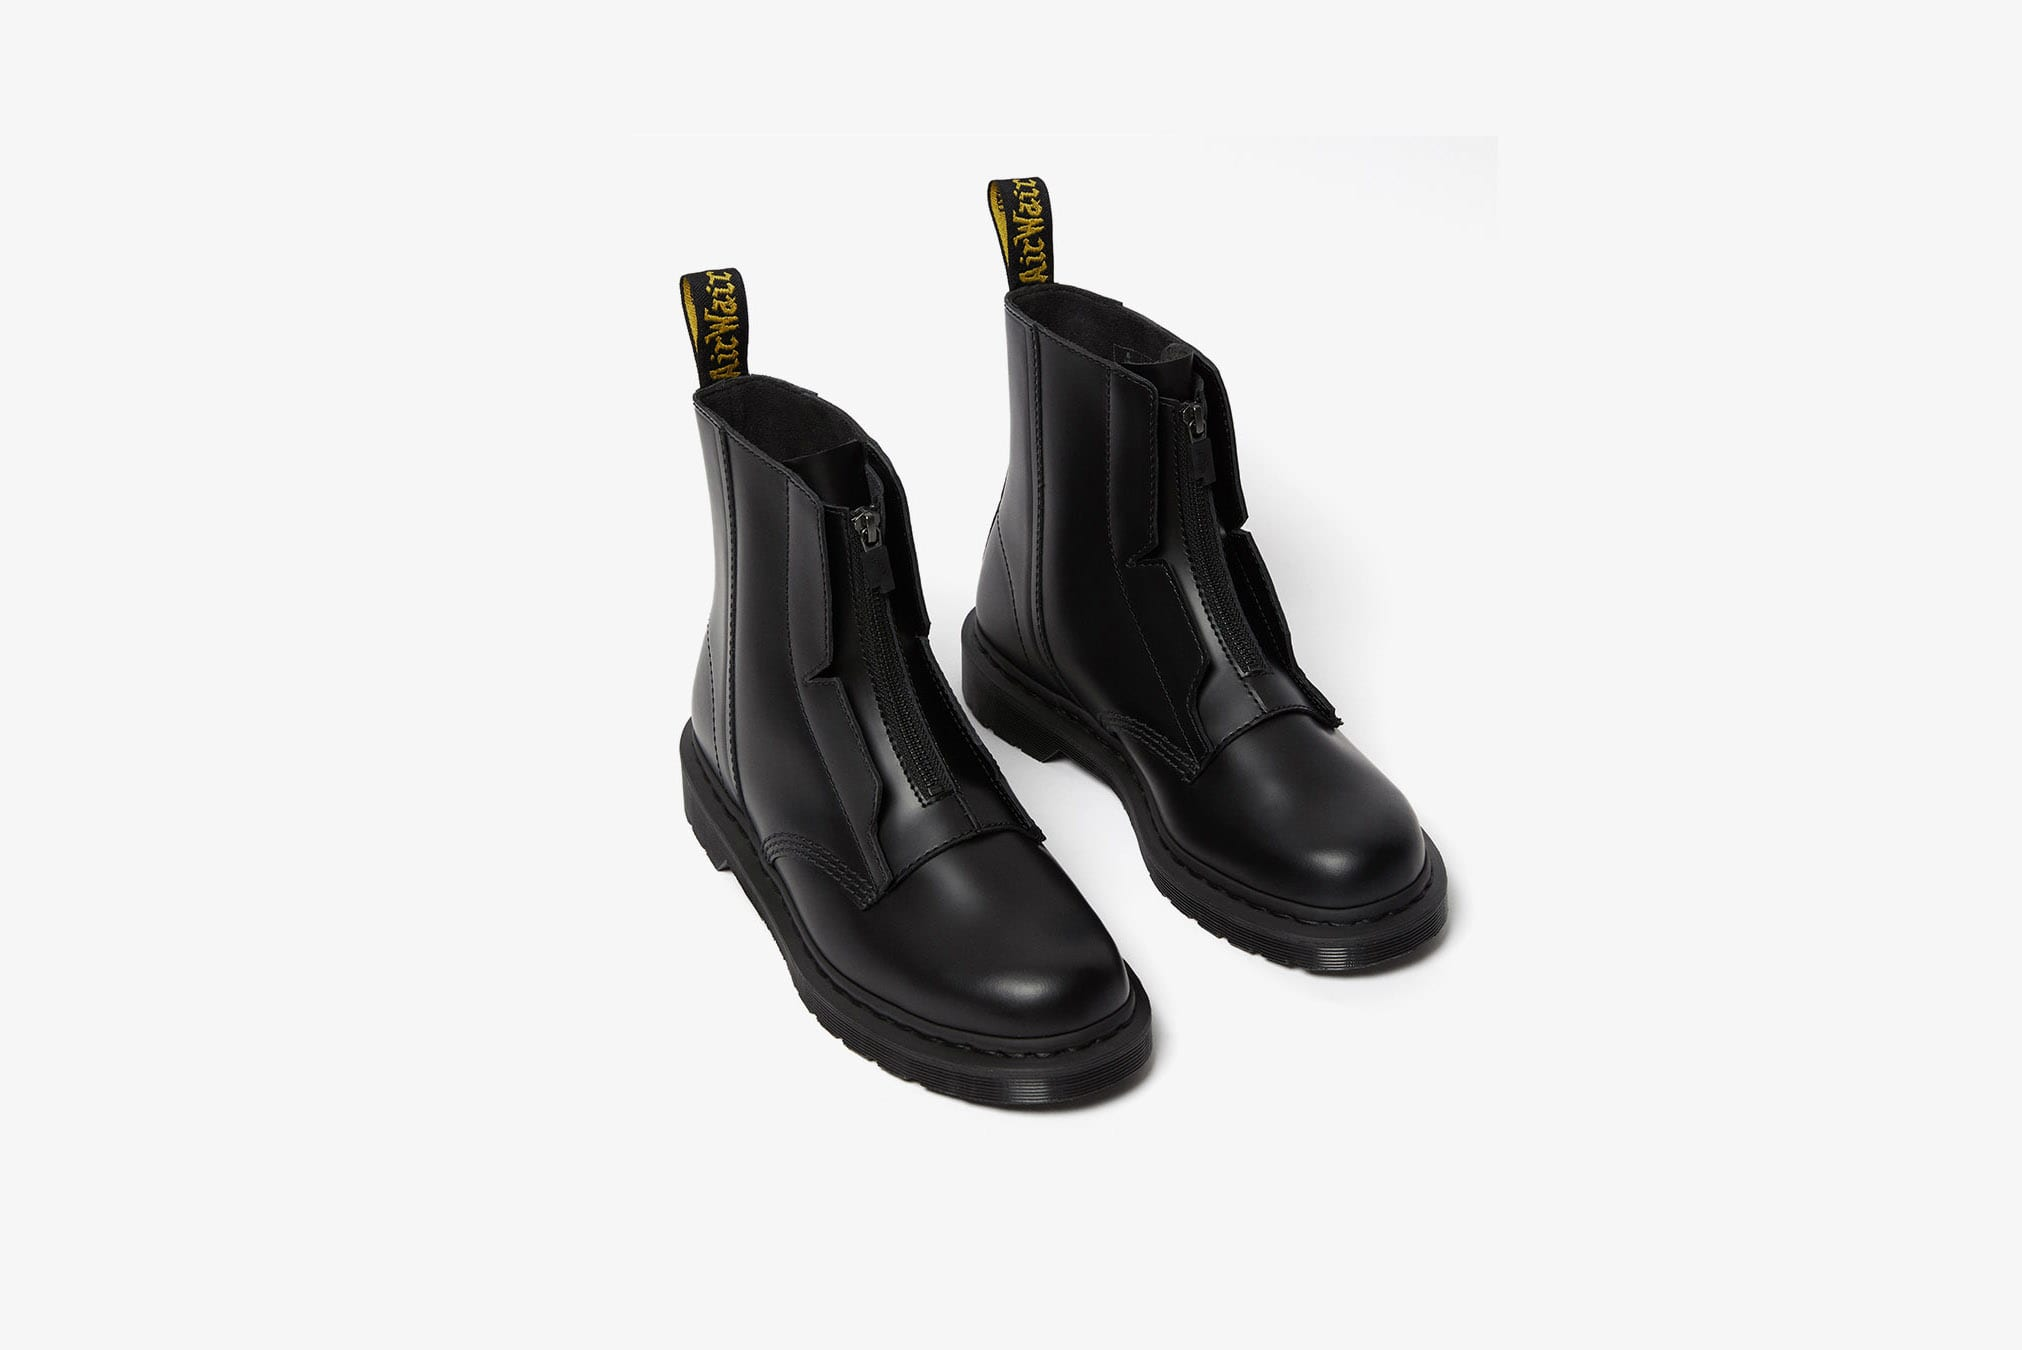 A-COLD-WALL* x Dr. Martens Zip-Up Leather Boot - 1460ACW